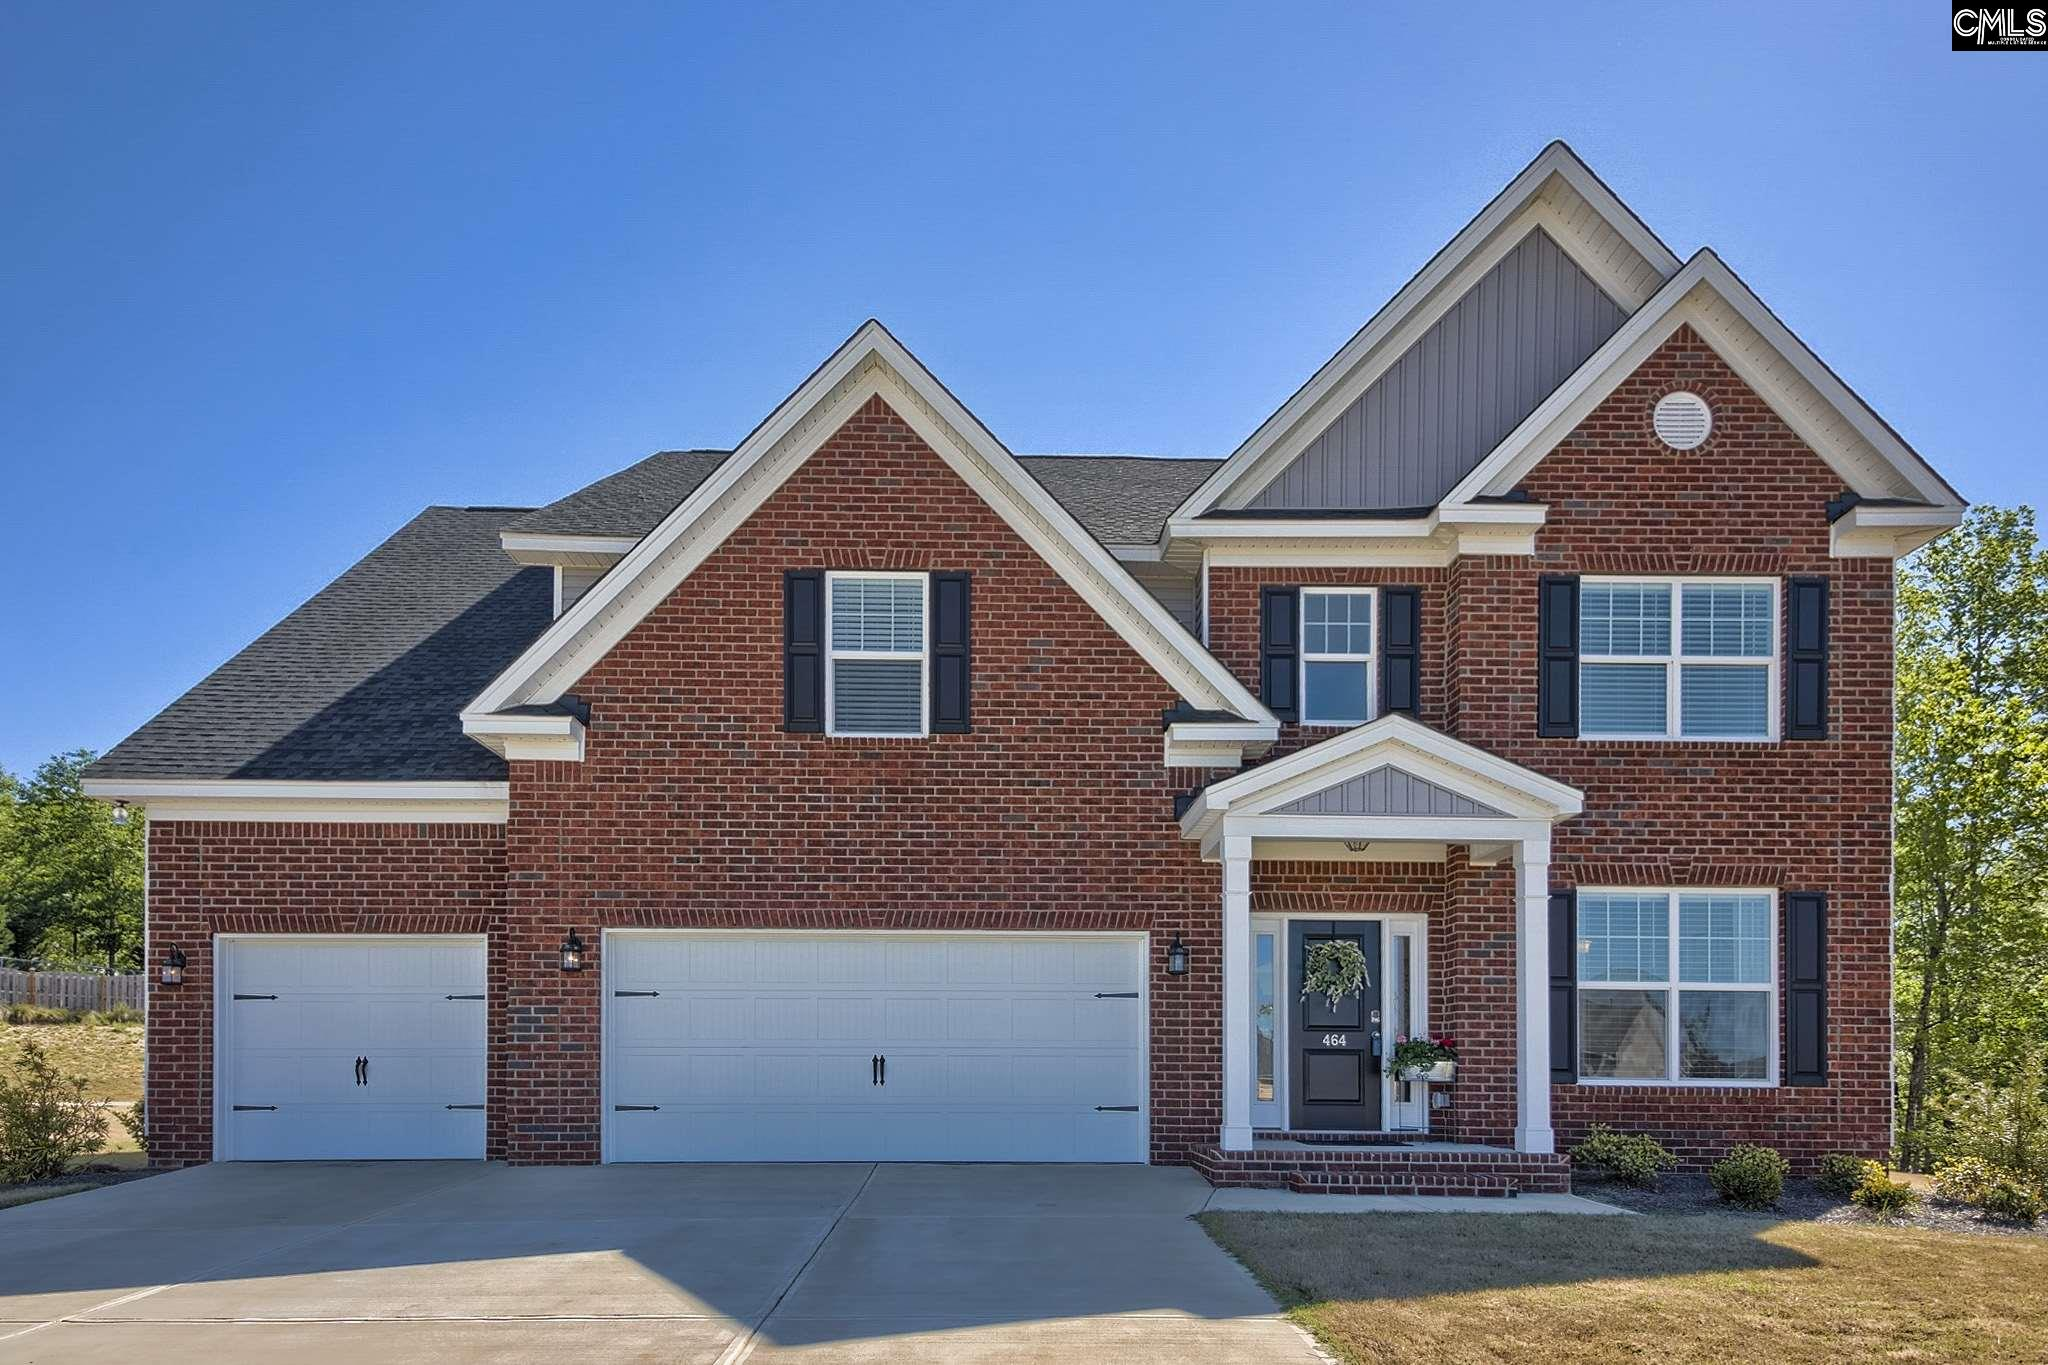 464 Maple Valley Blythewood, SC 29016